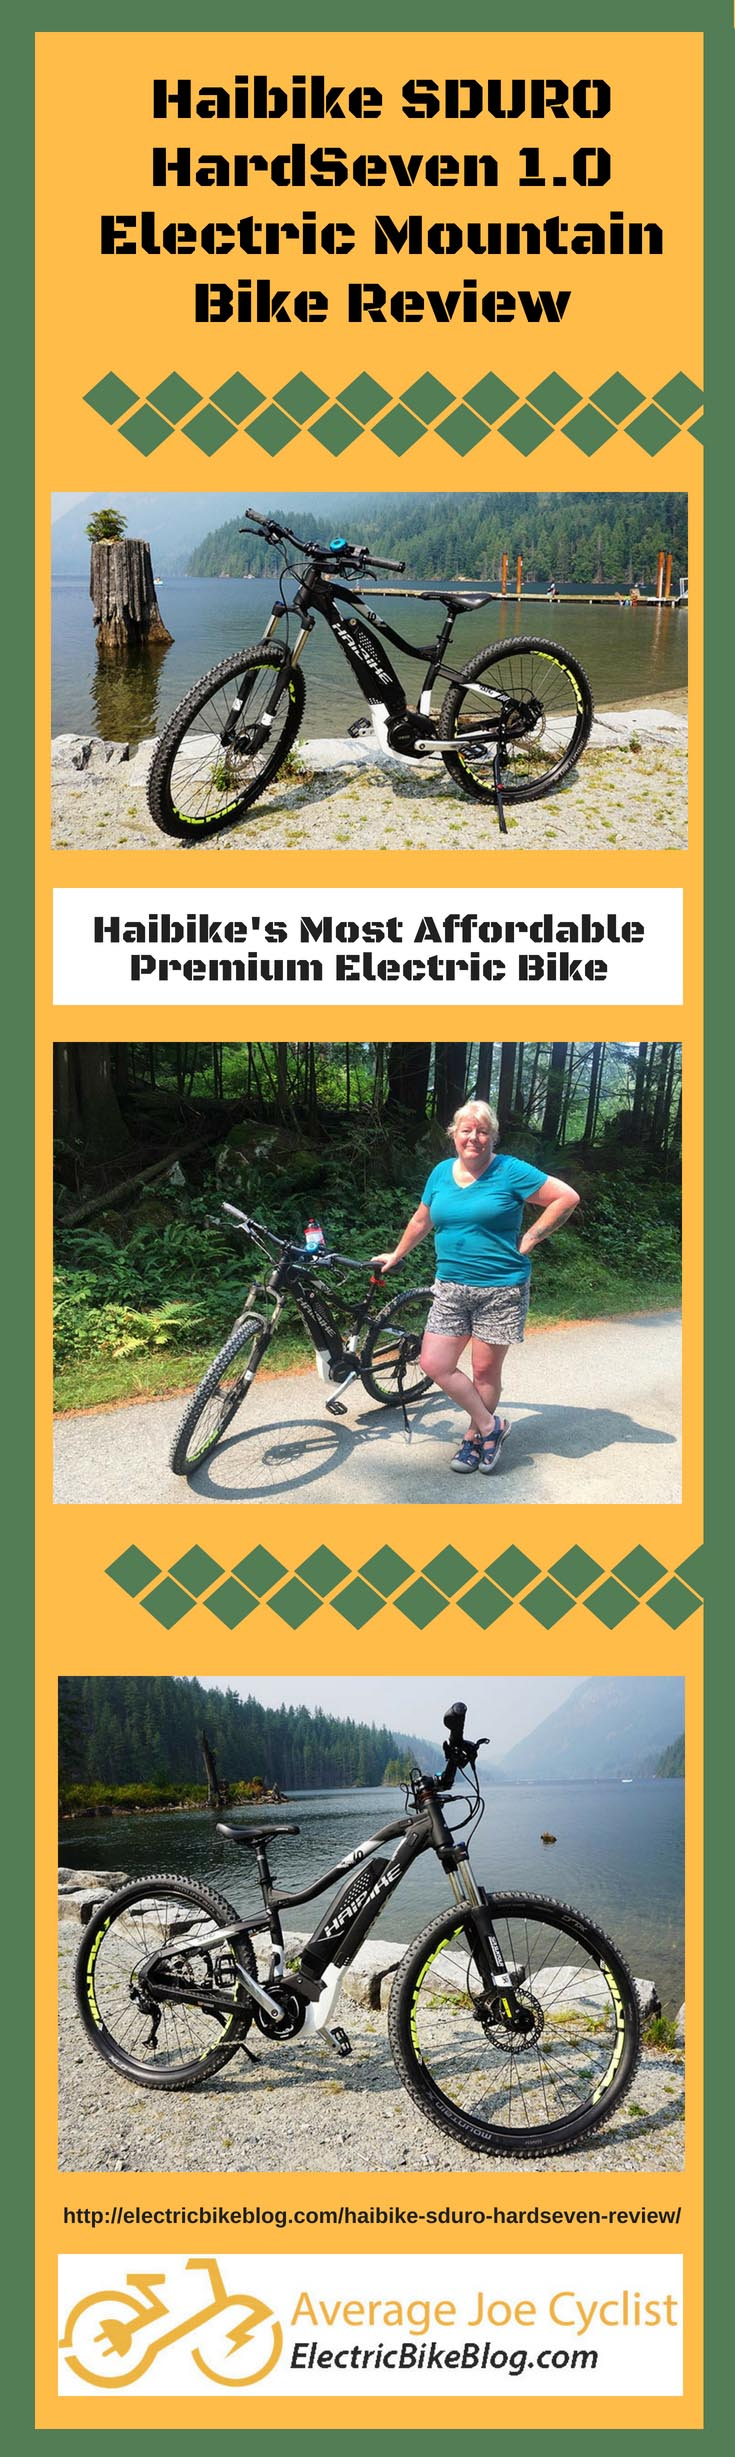 Haibike SDURO HardSeven 1.0 Electric Bike Review